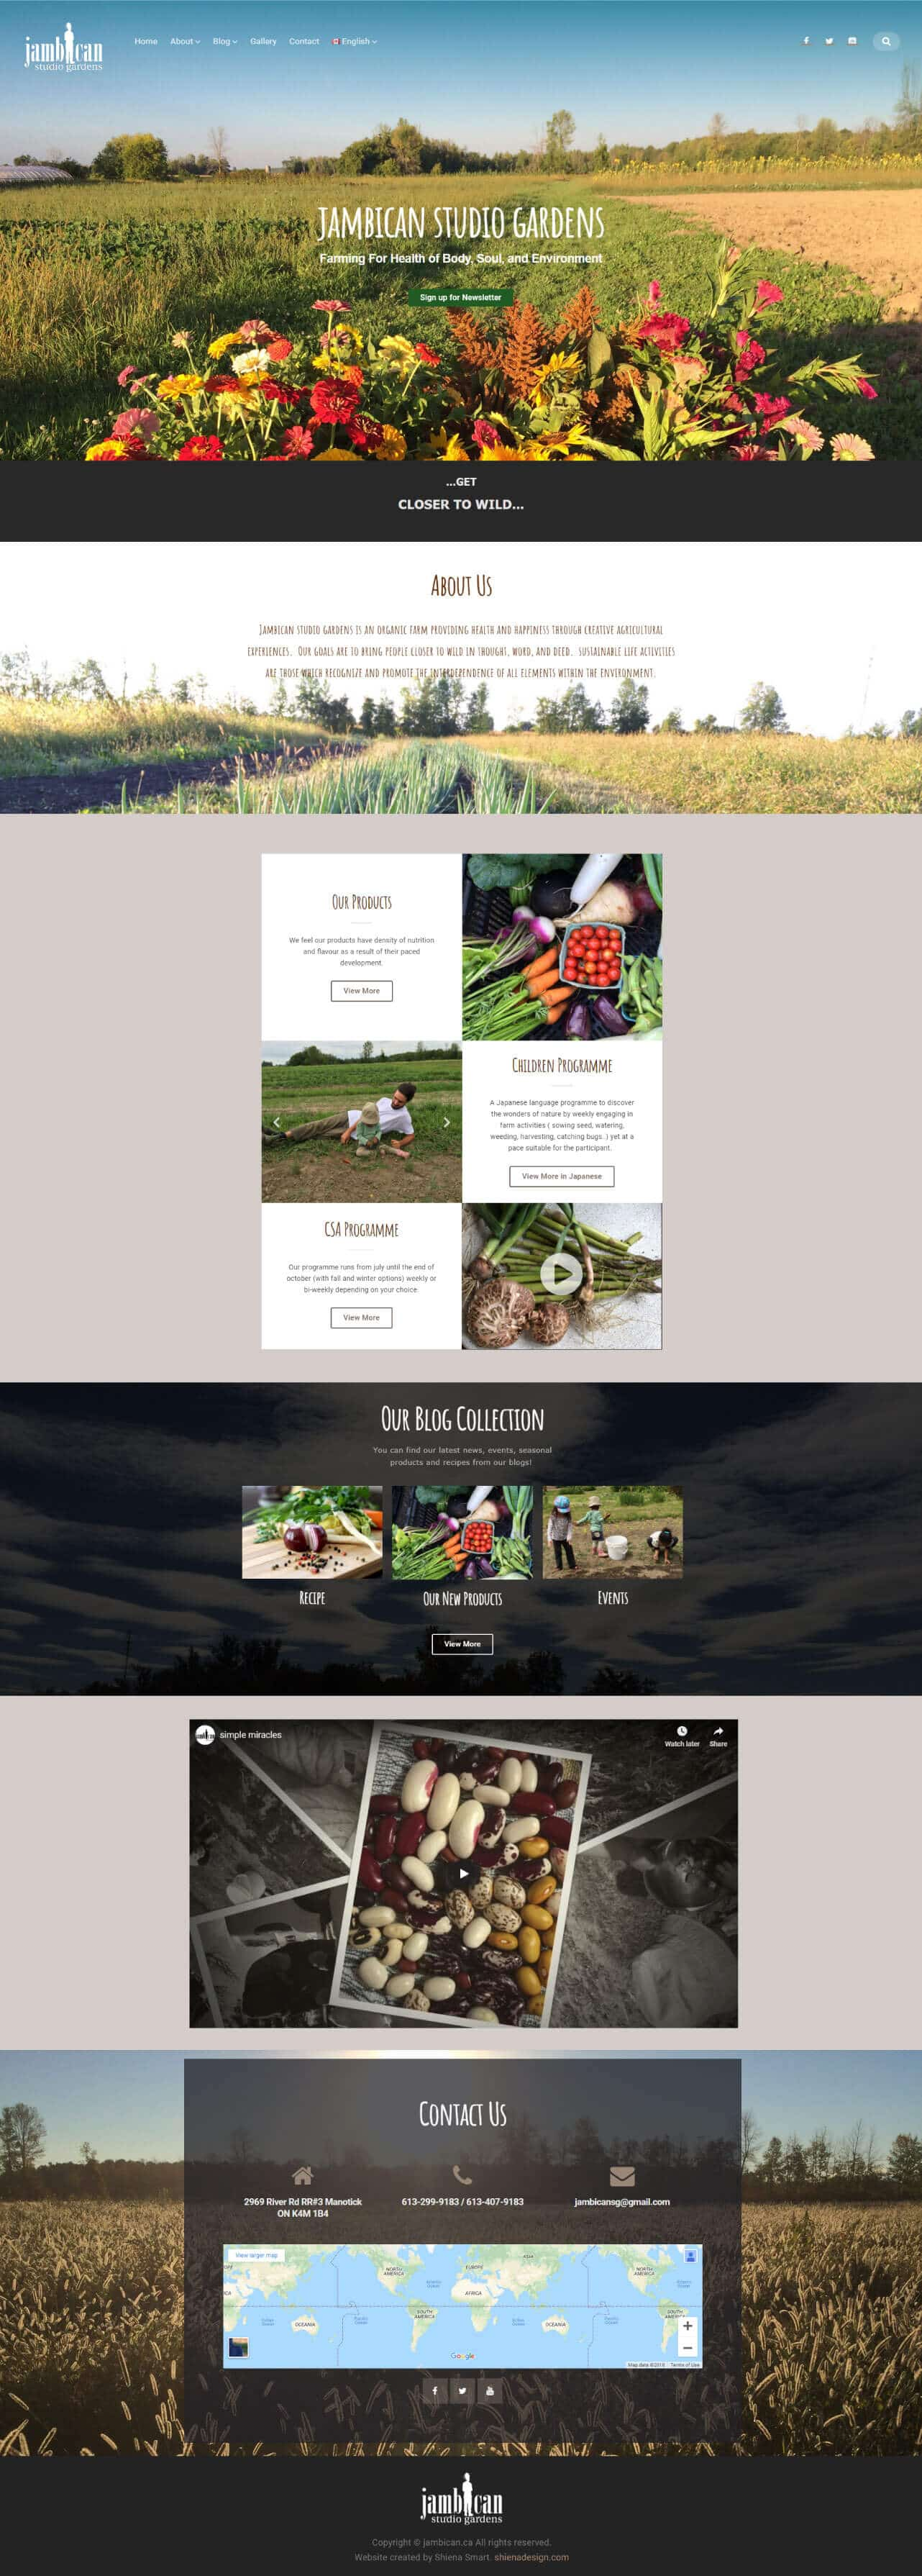 Jambican organic farm homepage design demo